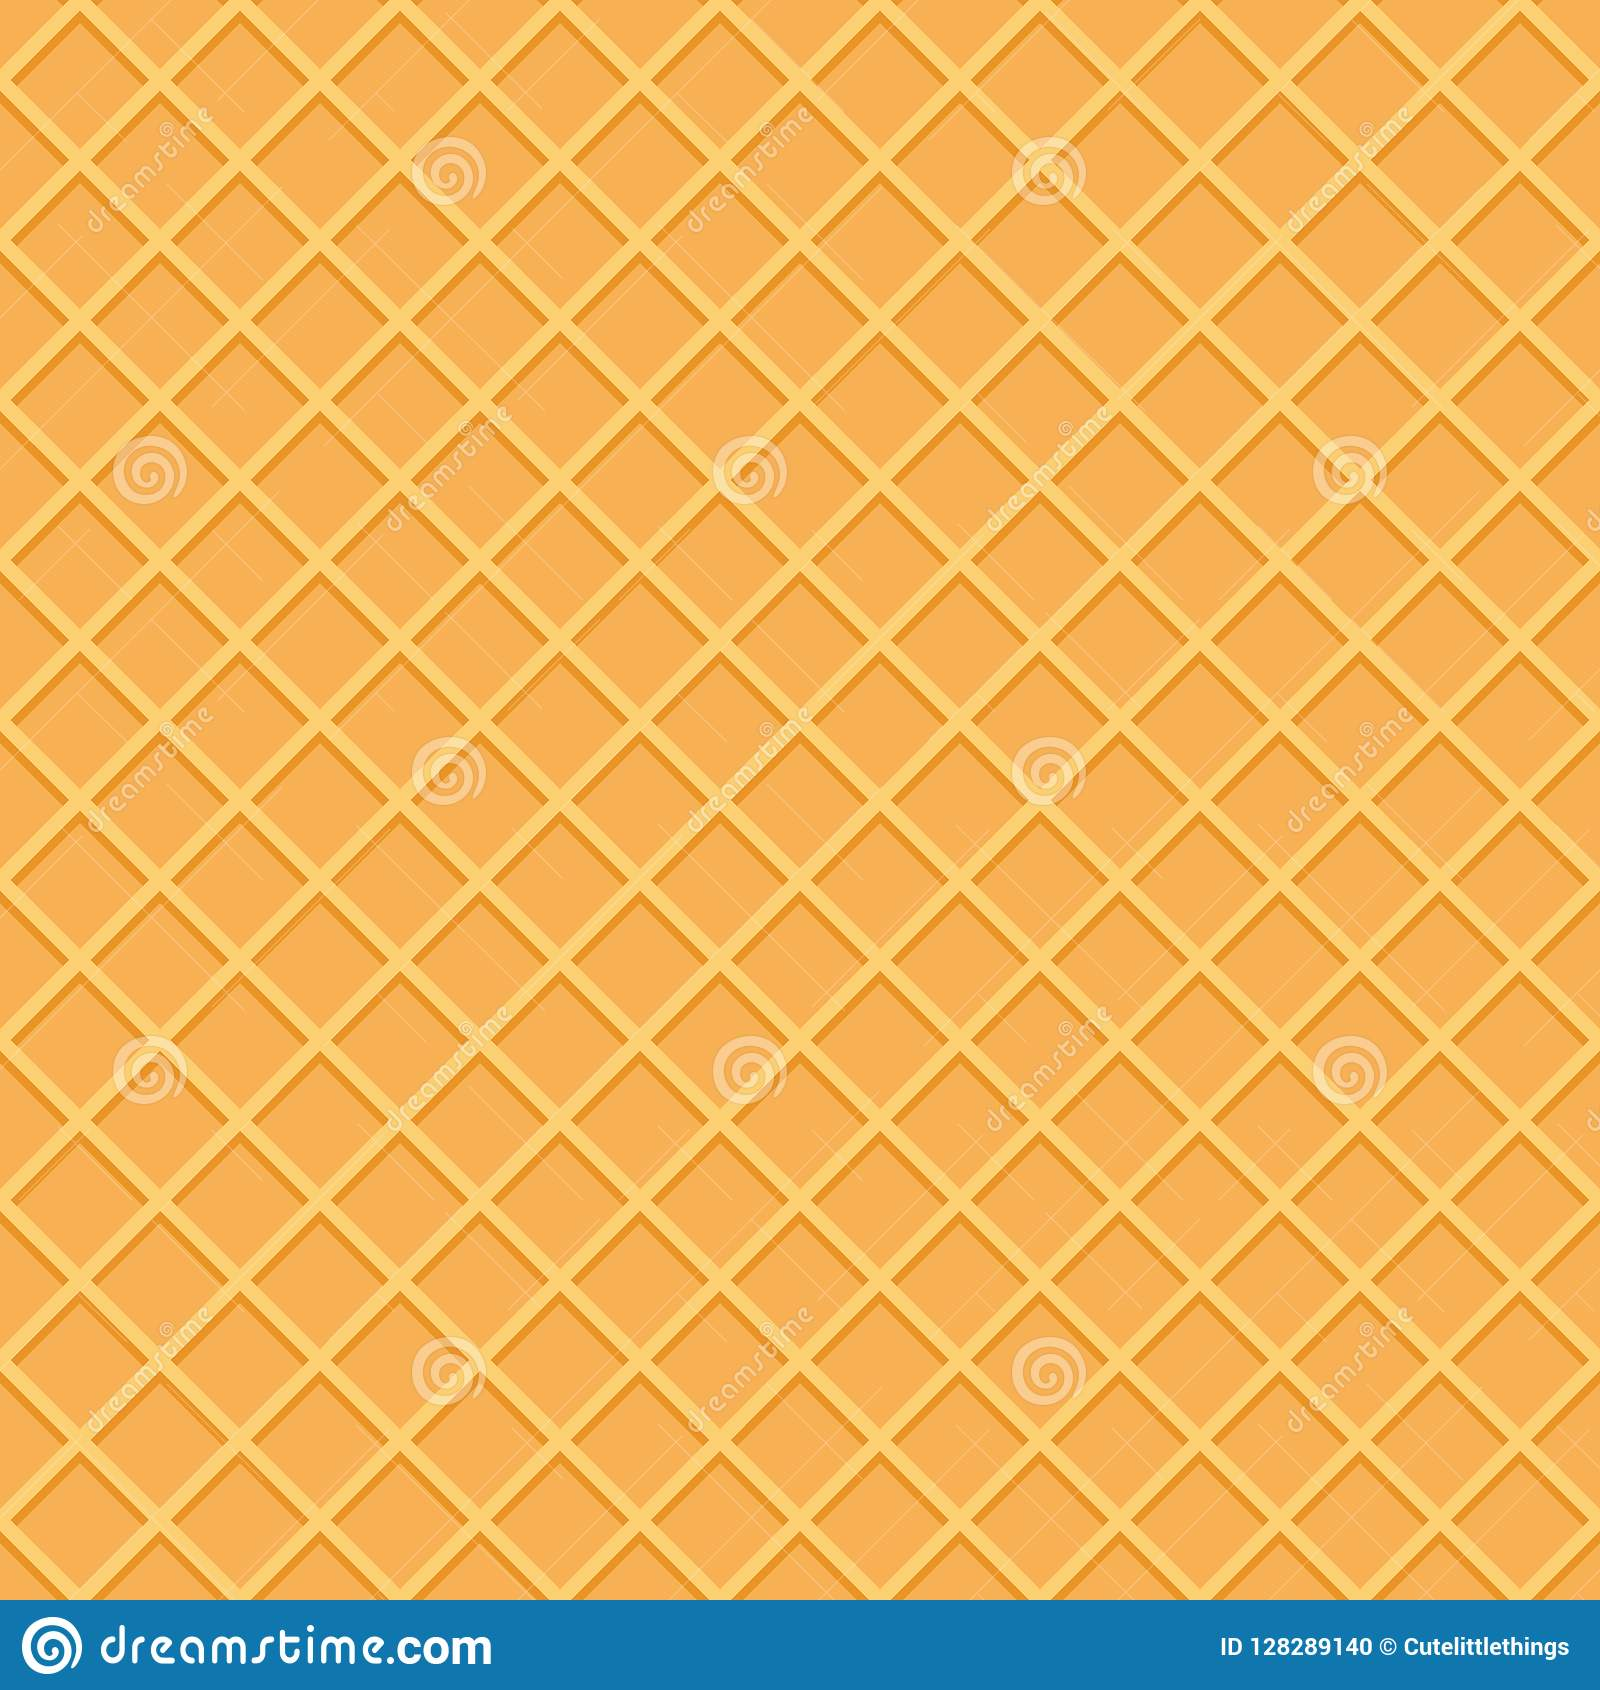 Seamless Ice Cream Background: Wafer Seamless Pattern Background. Ice Cream Cone Surface